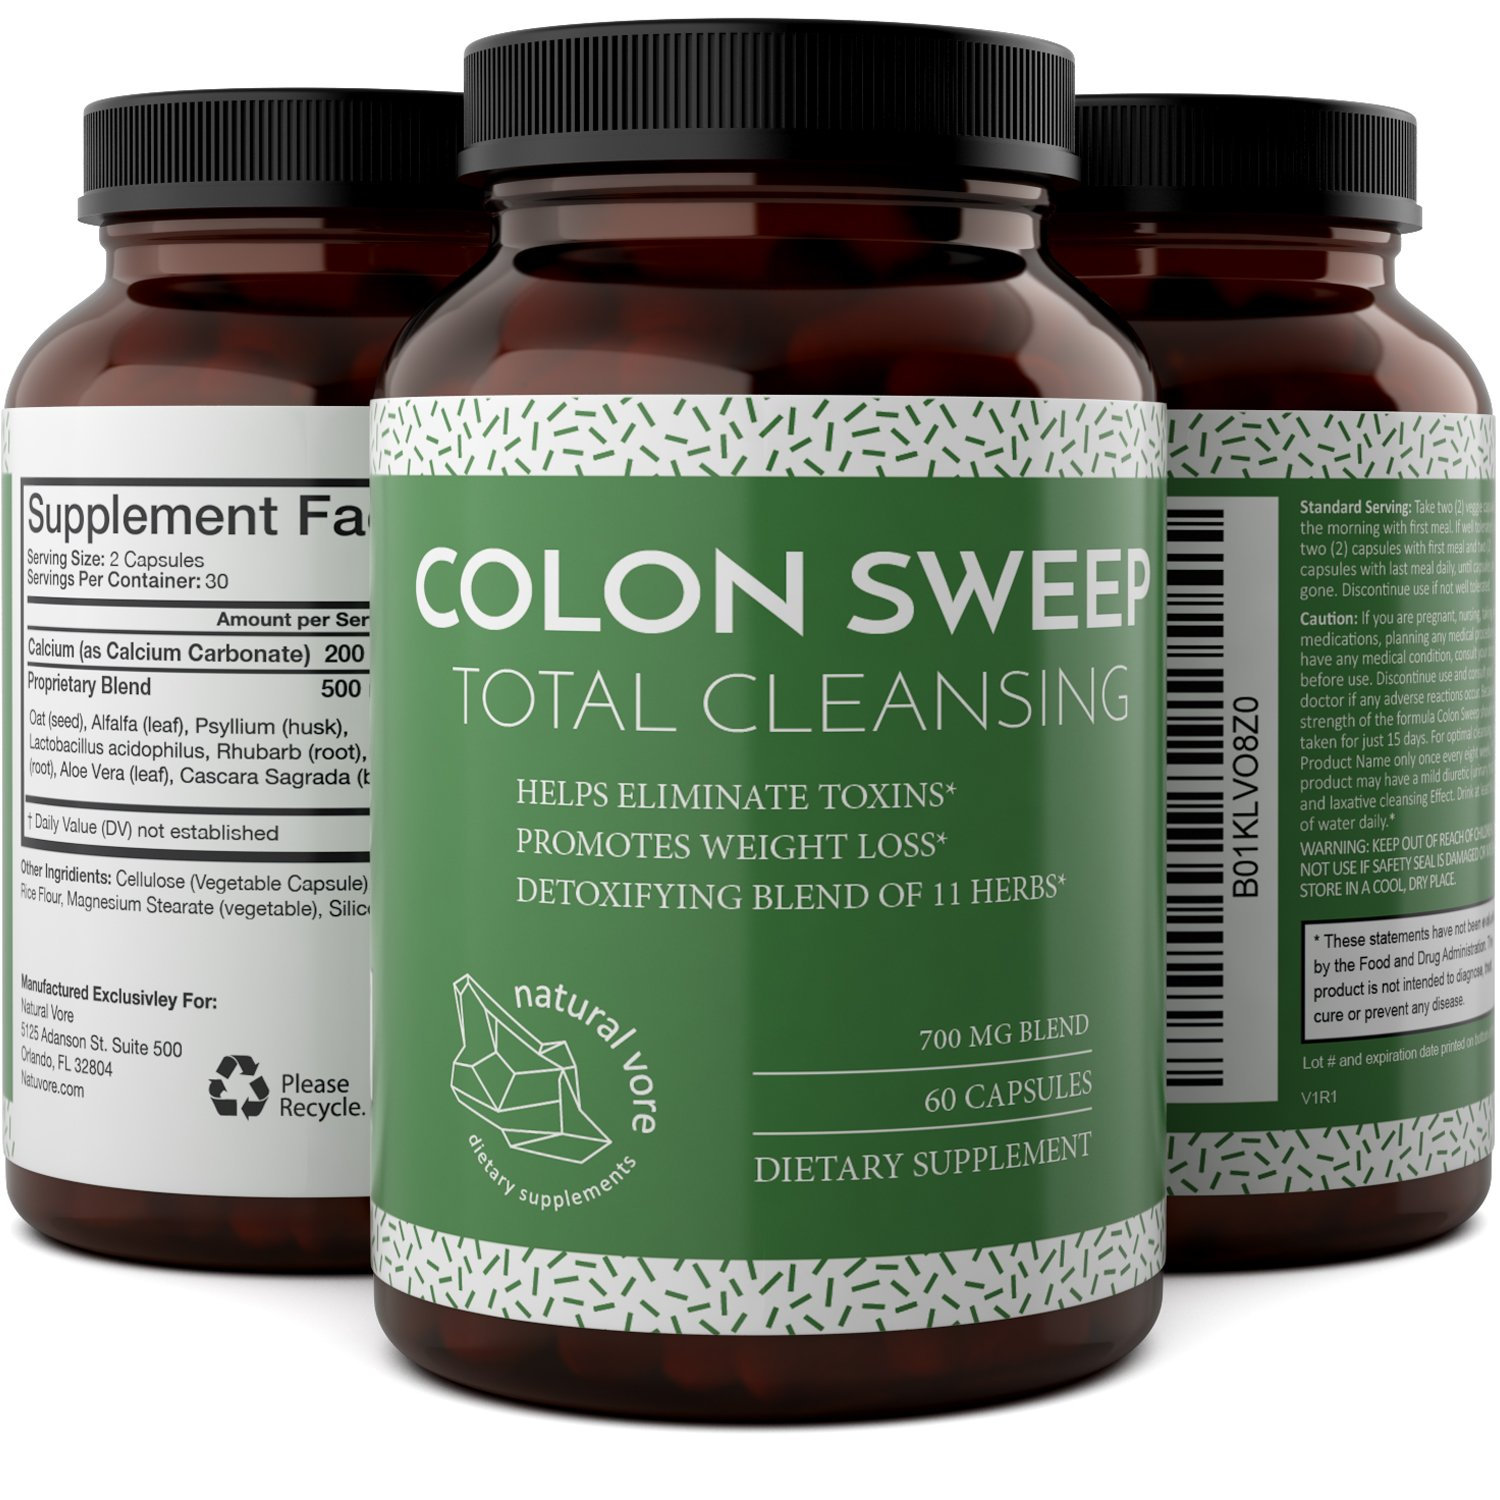 Natural And Pure Colon Cleanse Detox Supplements With Bentonite + Calcium + Psyllium Husk - Boost The Digestive System And Enhance The Immune System - Colon Cleanse Pills With Alfalfa By Natural Vore